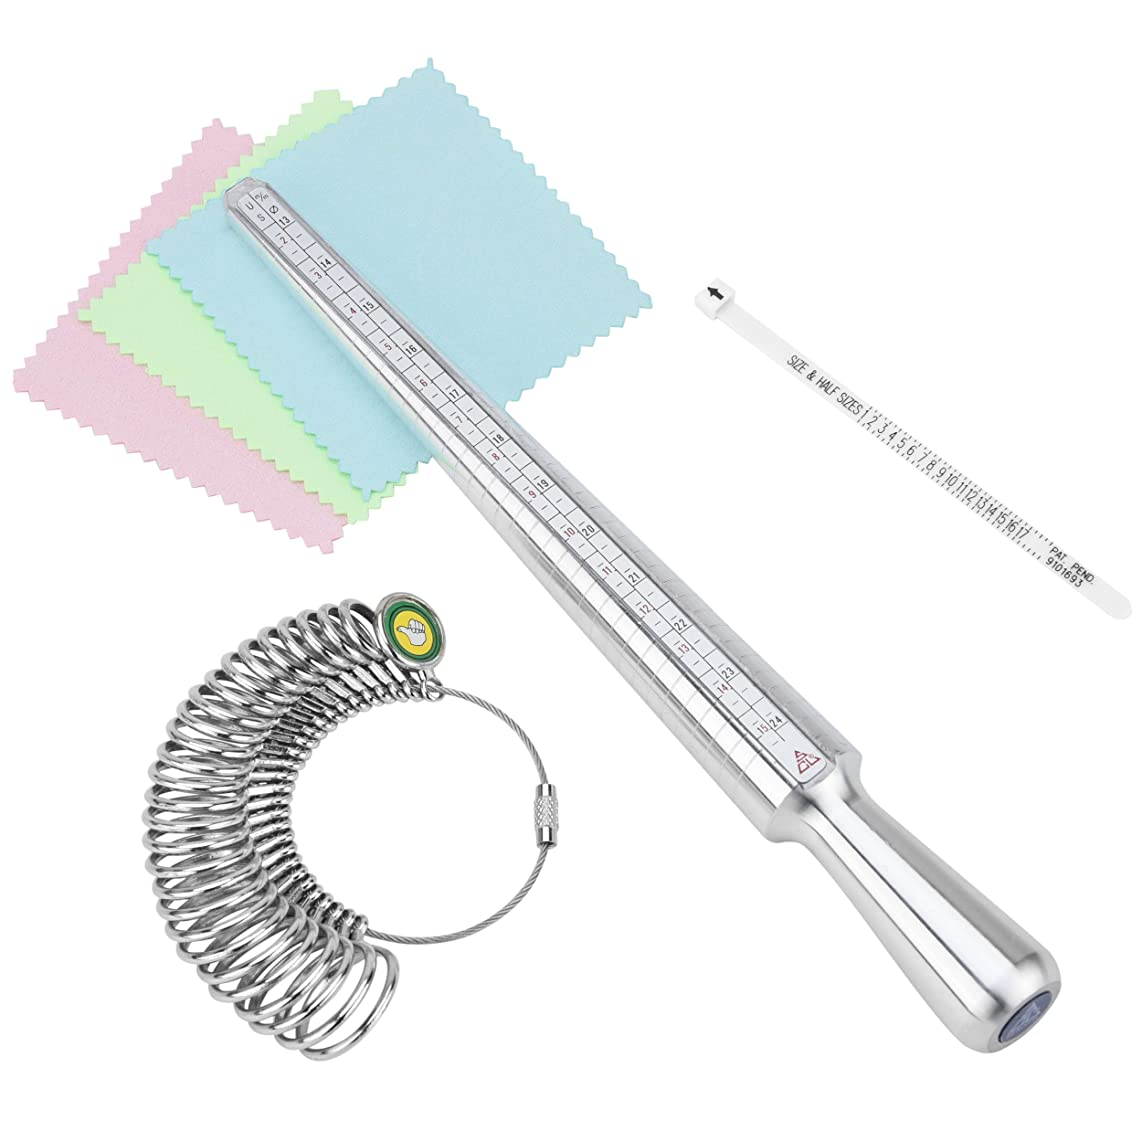 Ring Sizer Mandrel Measuring Tool Iron/Steel/Plastic Gauge Finger Measurement Set With 3 Piece Jewelry Polishing Cloth